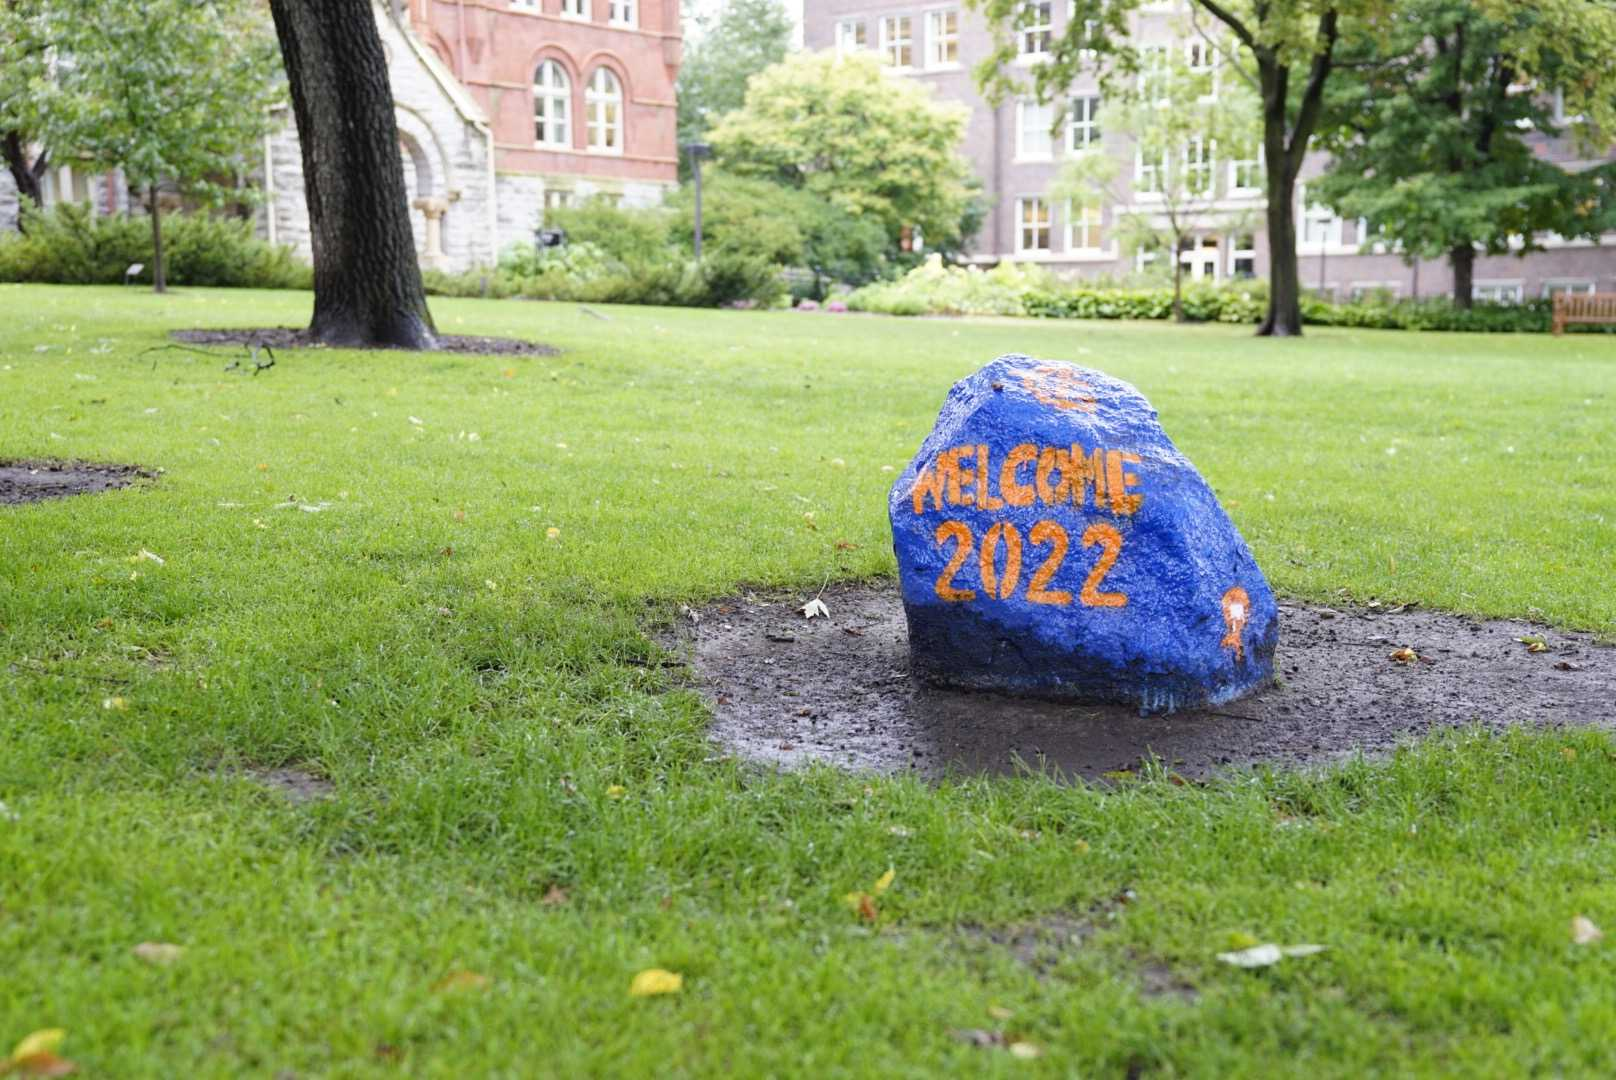 The rock, painted to welcome the Class of 2022. Photo by Ally Kruper '21.